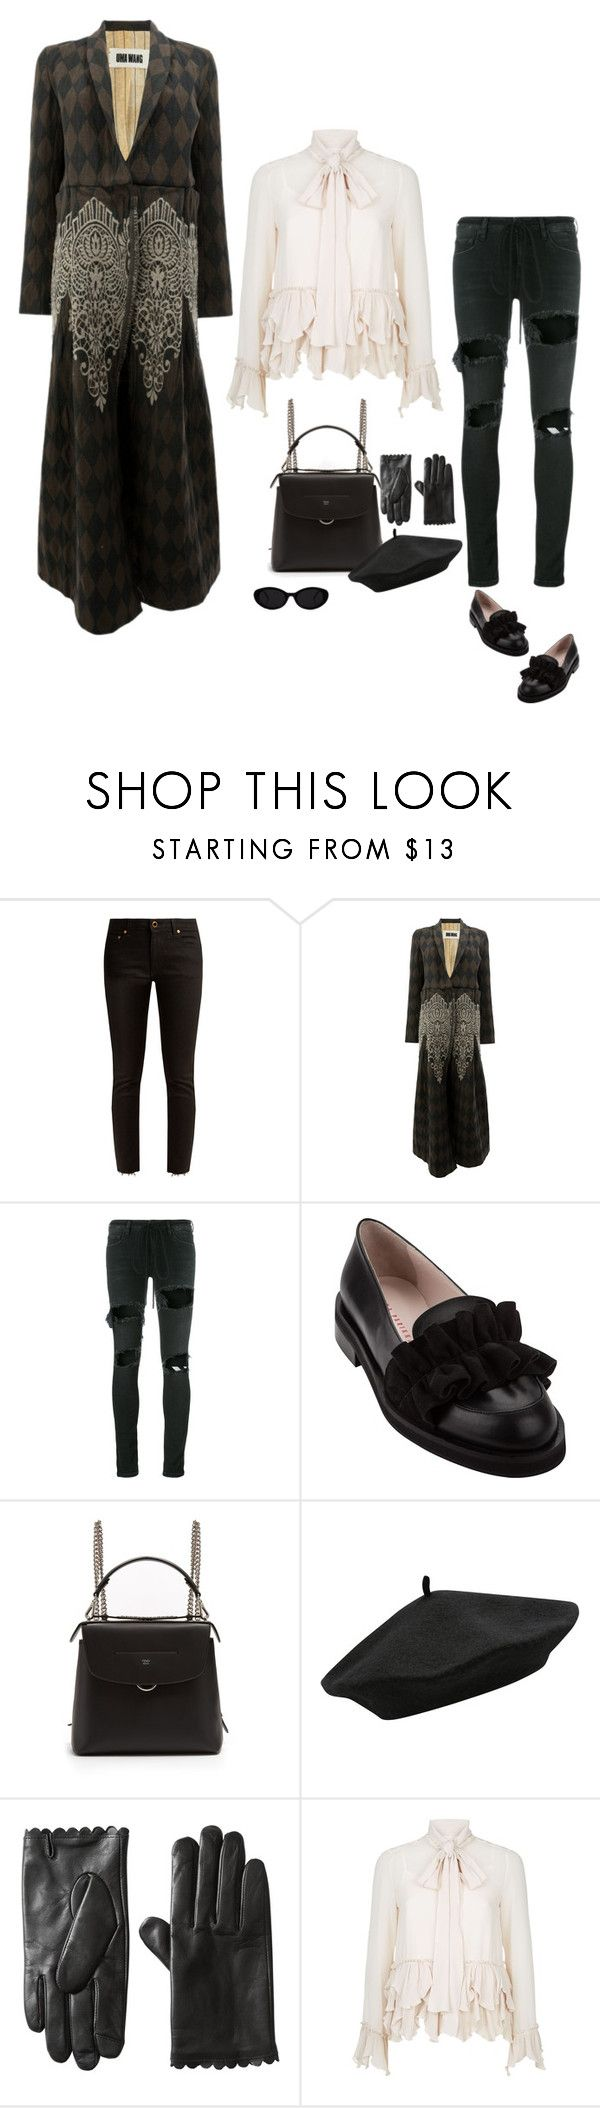 """""""Untitled #6799"""" by lovetodrinktea ❤ liked on Polyvore featuring Khaite, Uma Wang, Off-White, Minna Parikka, Fendi, M&Co and See by Chloé"""